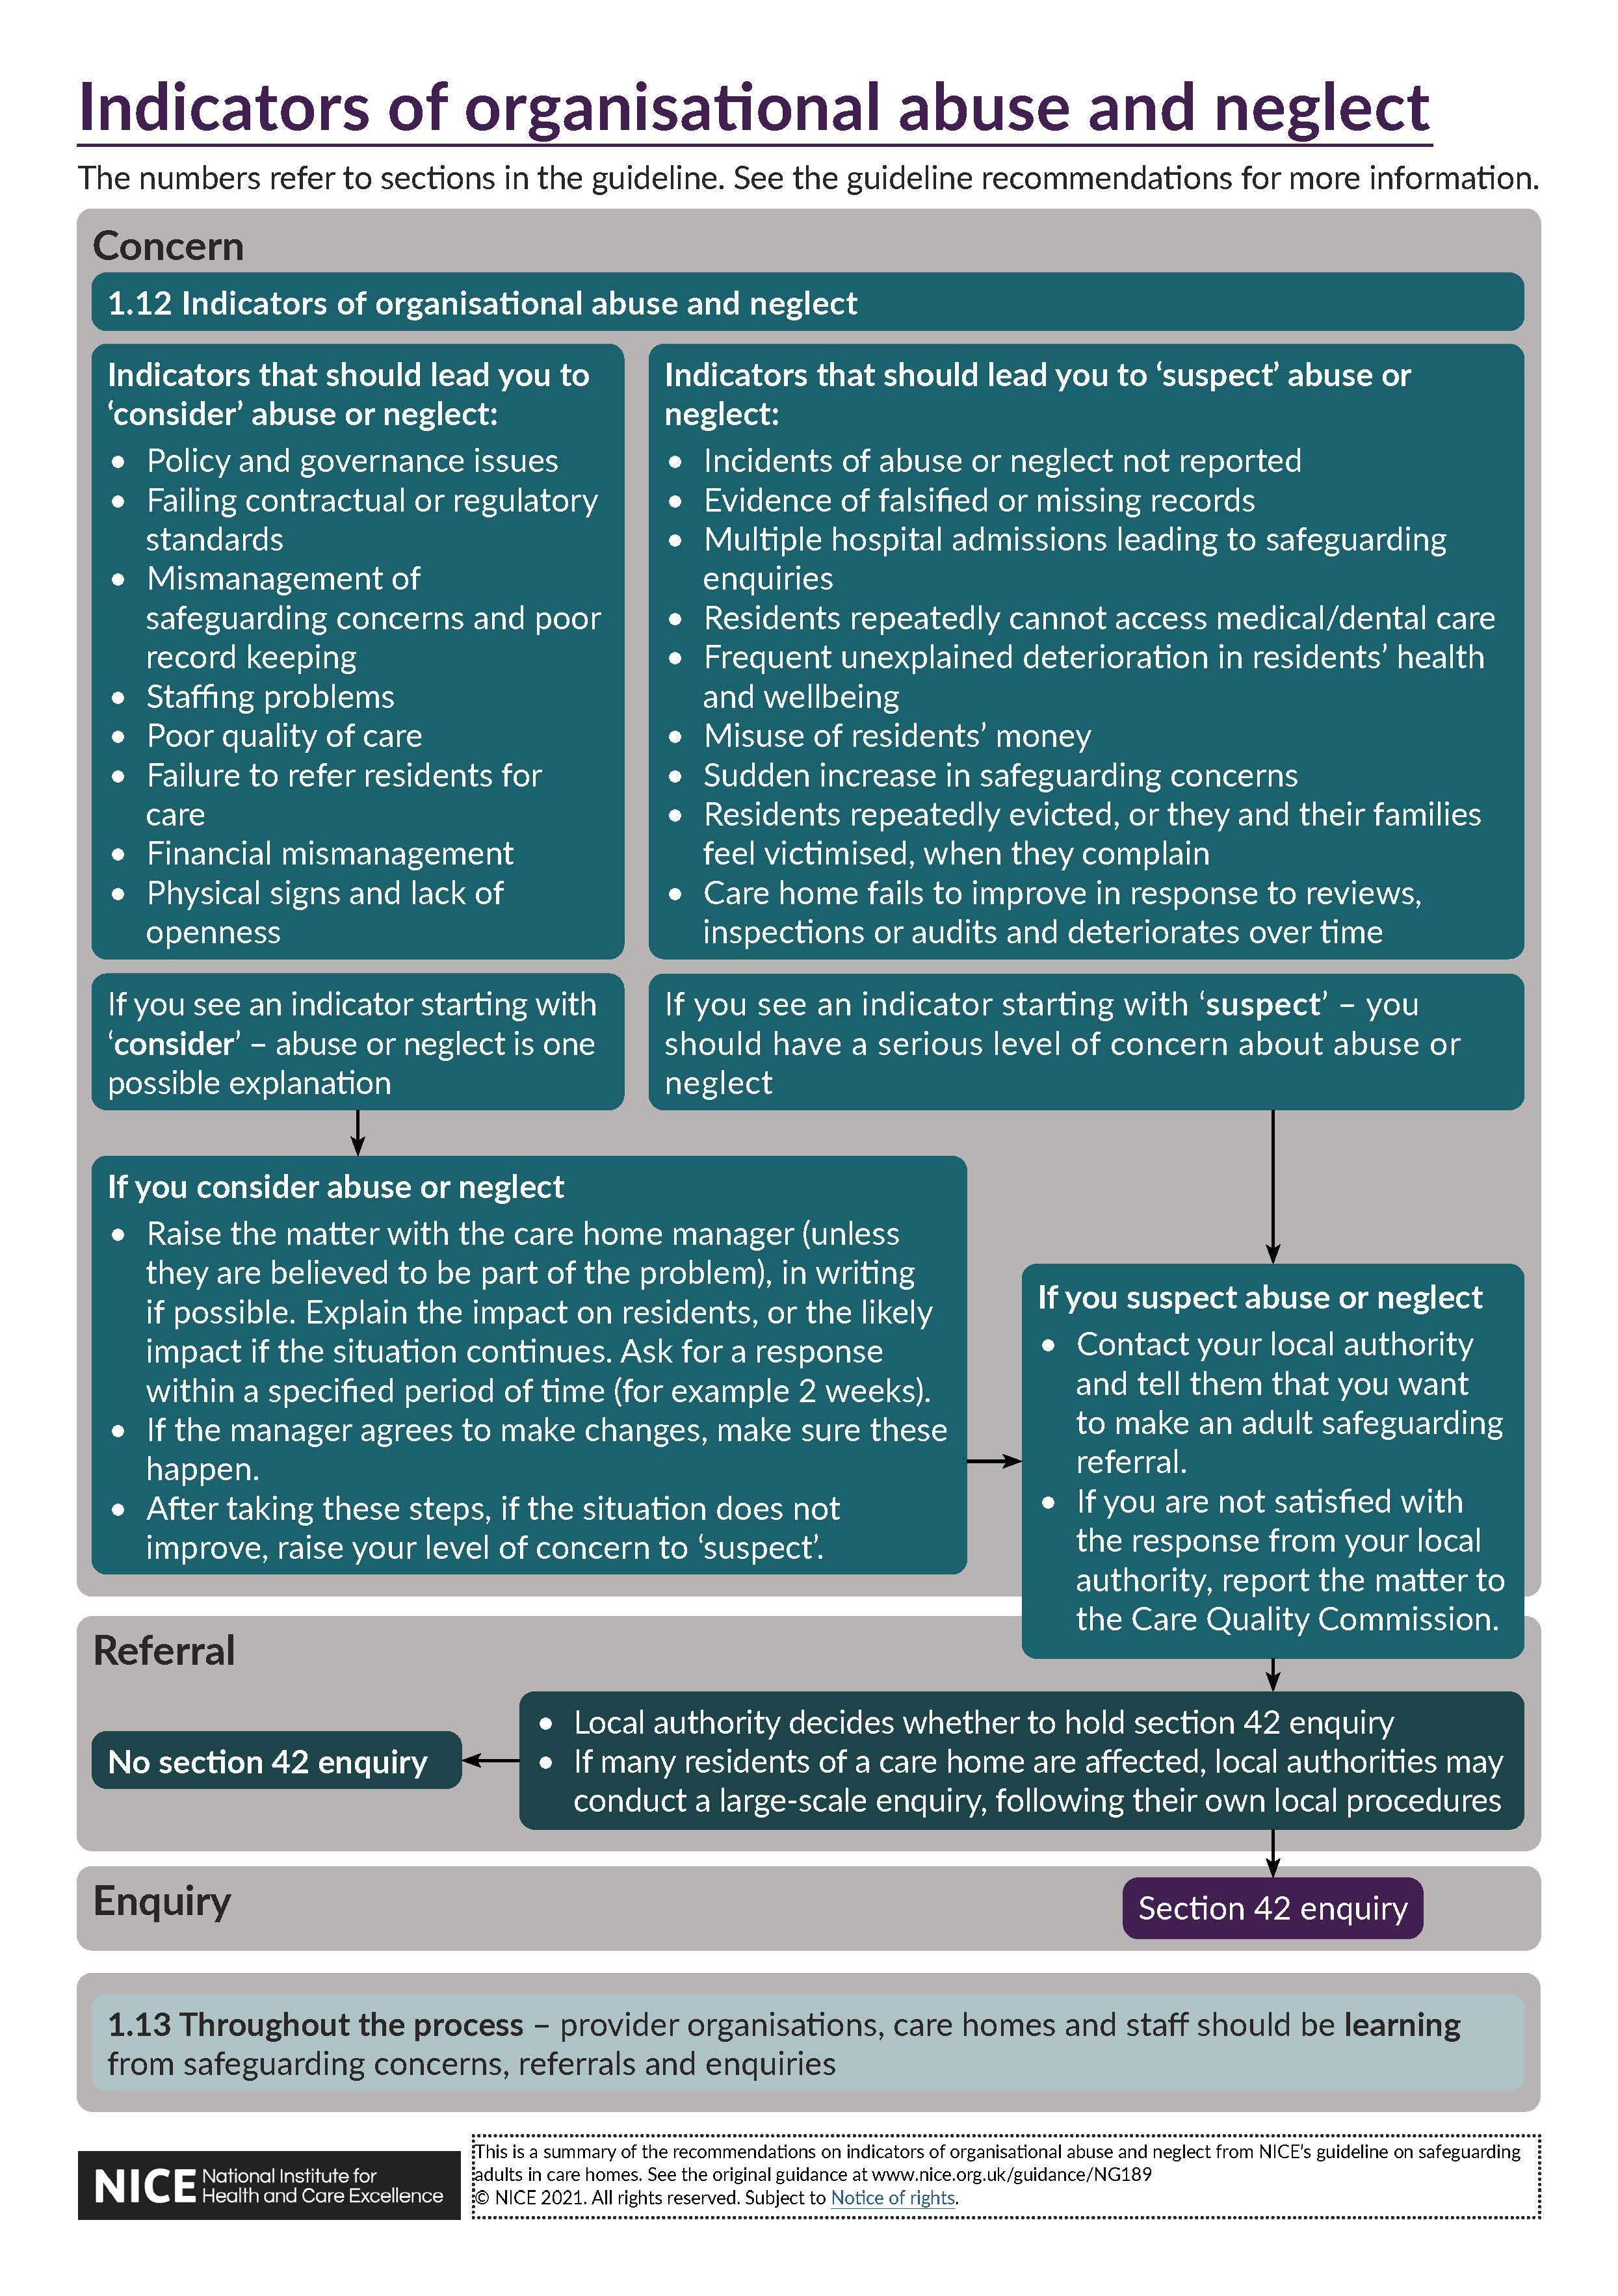 View organisational abuse and neglect visual summary